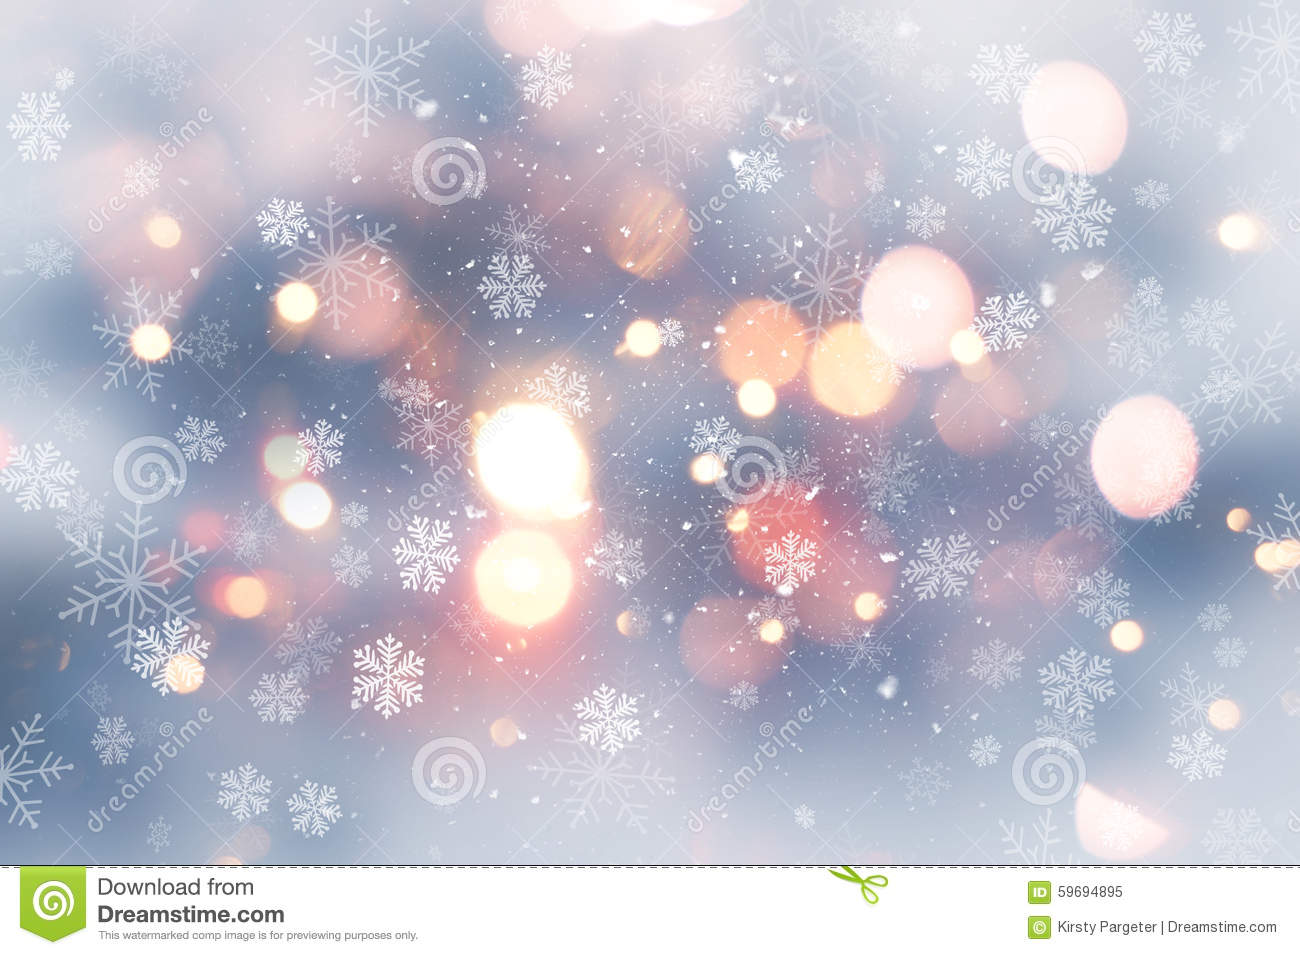 Free Snow Falling Wallpaper Christmas Background With Snow And Bokeh Lights Stock